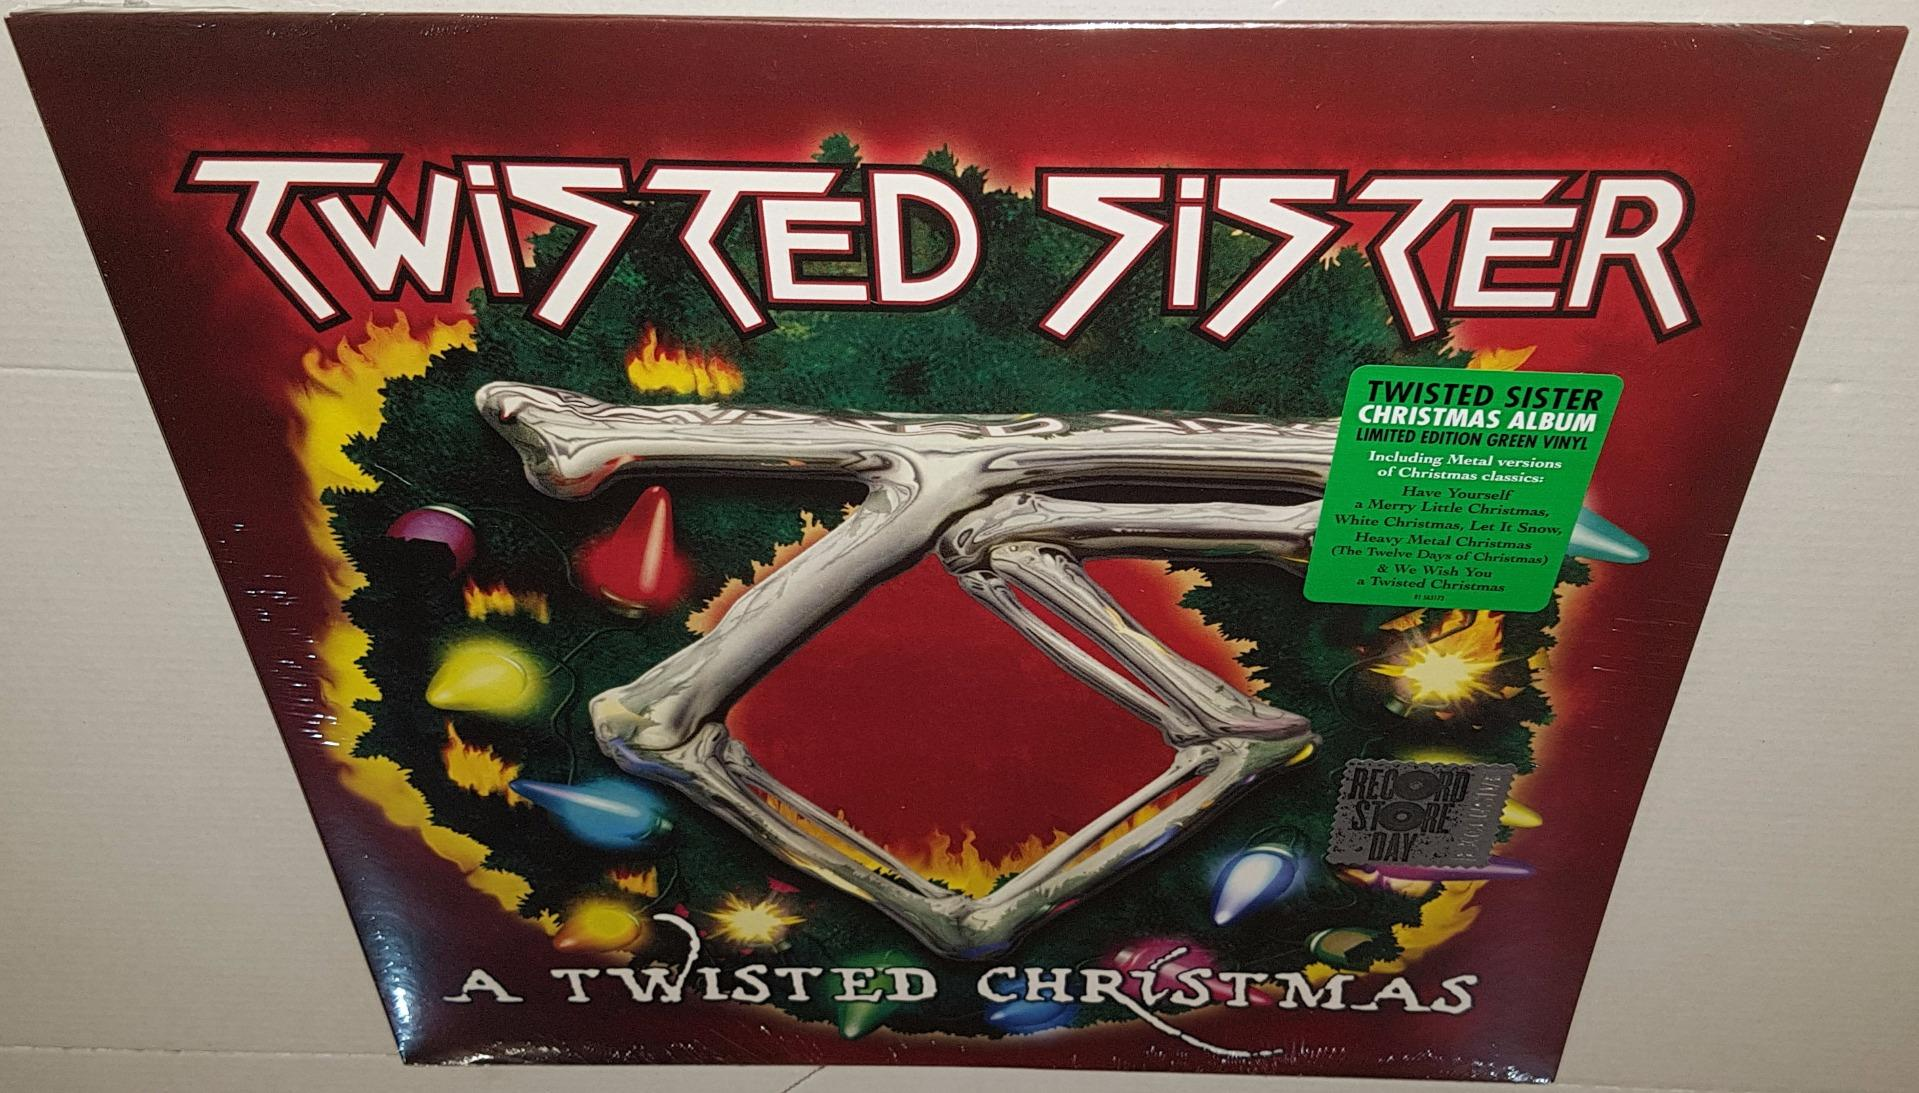 Twisted Sister Christmas.Details About Twisted Sister A Twisted Christmas 2017 Brand New Sealed Limited Rsd Vinyl Lp